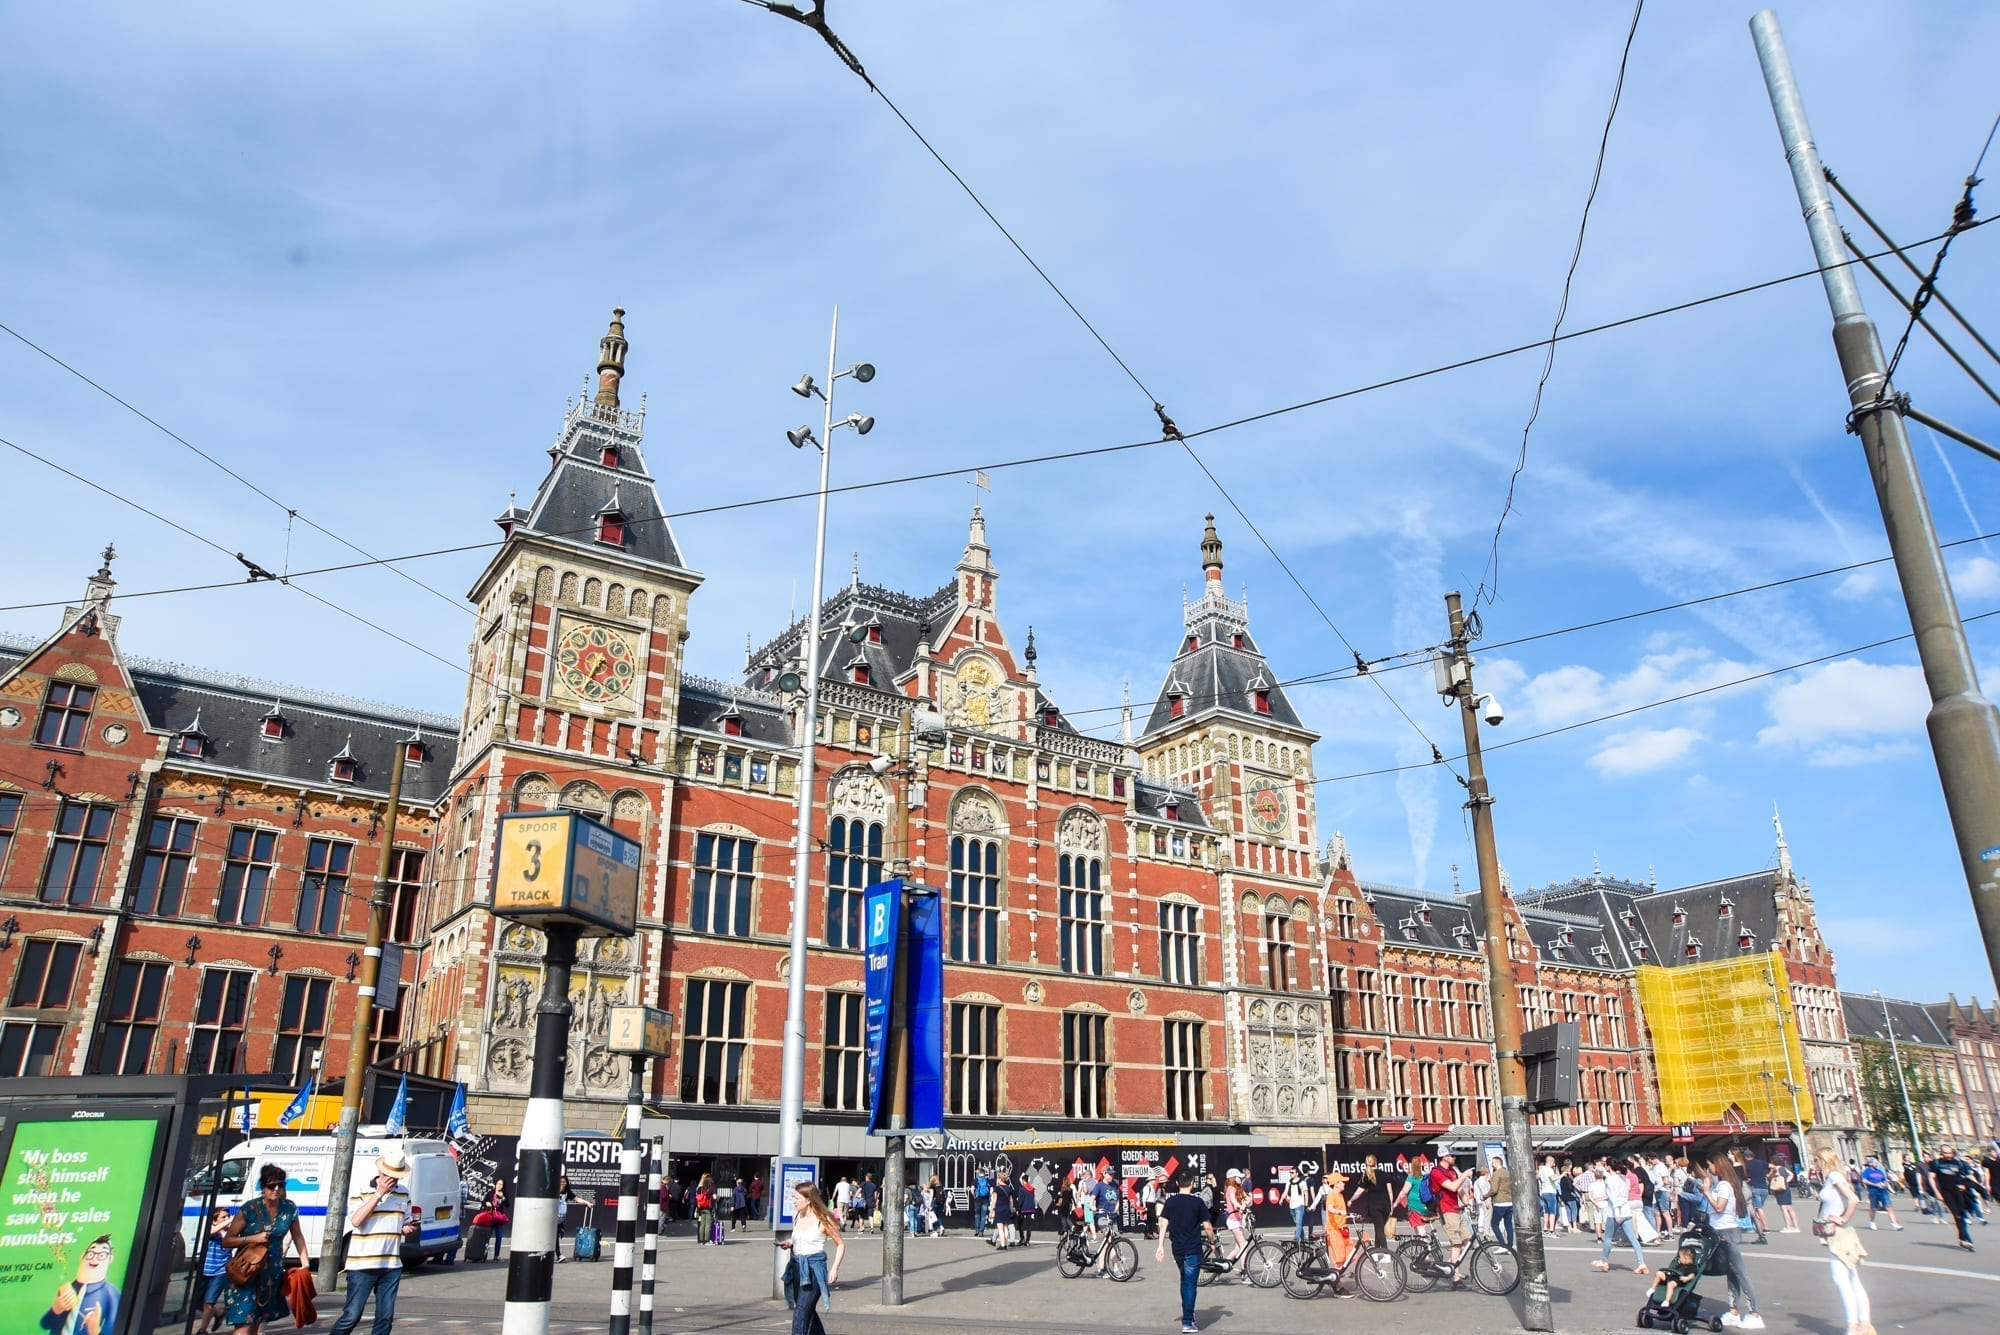 central station in Amsterdam with people milling around. the ground is flat